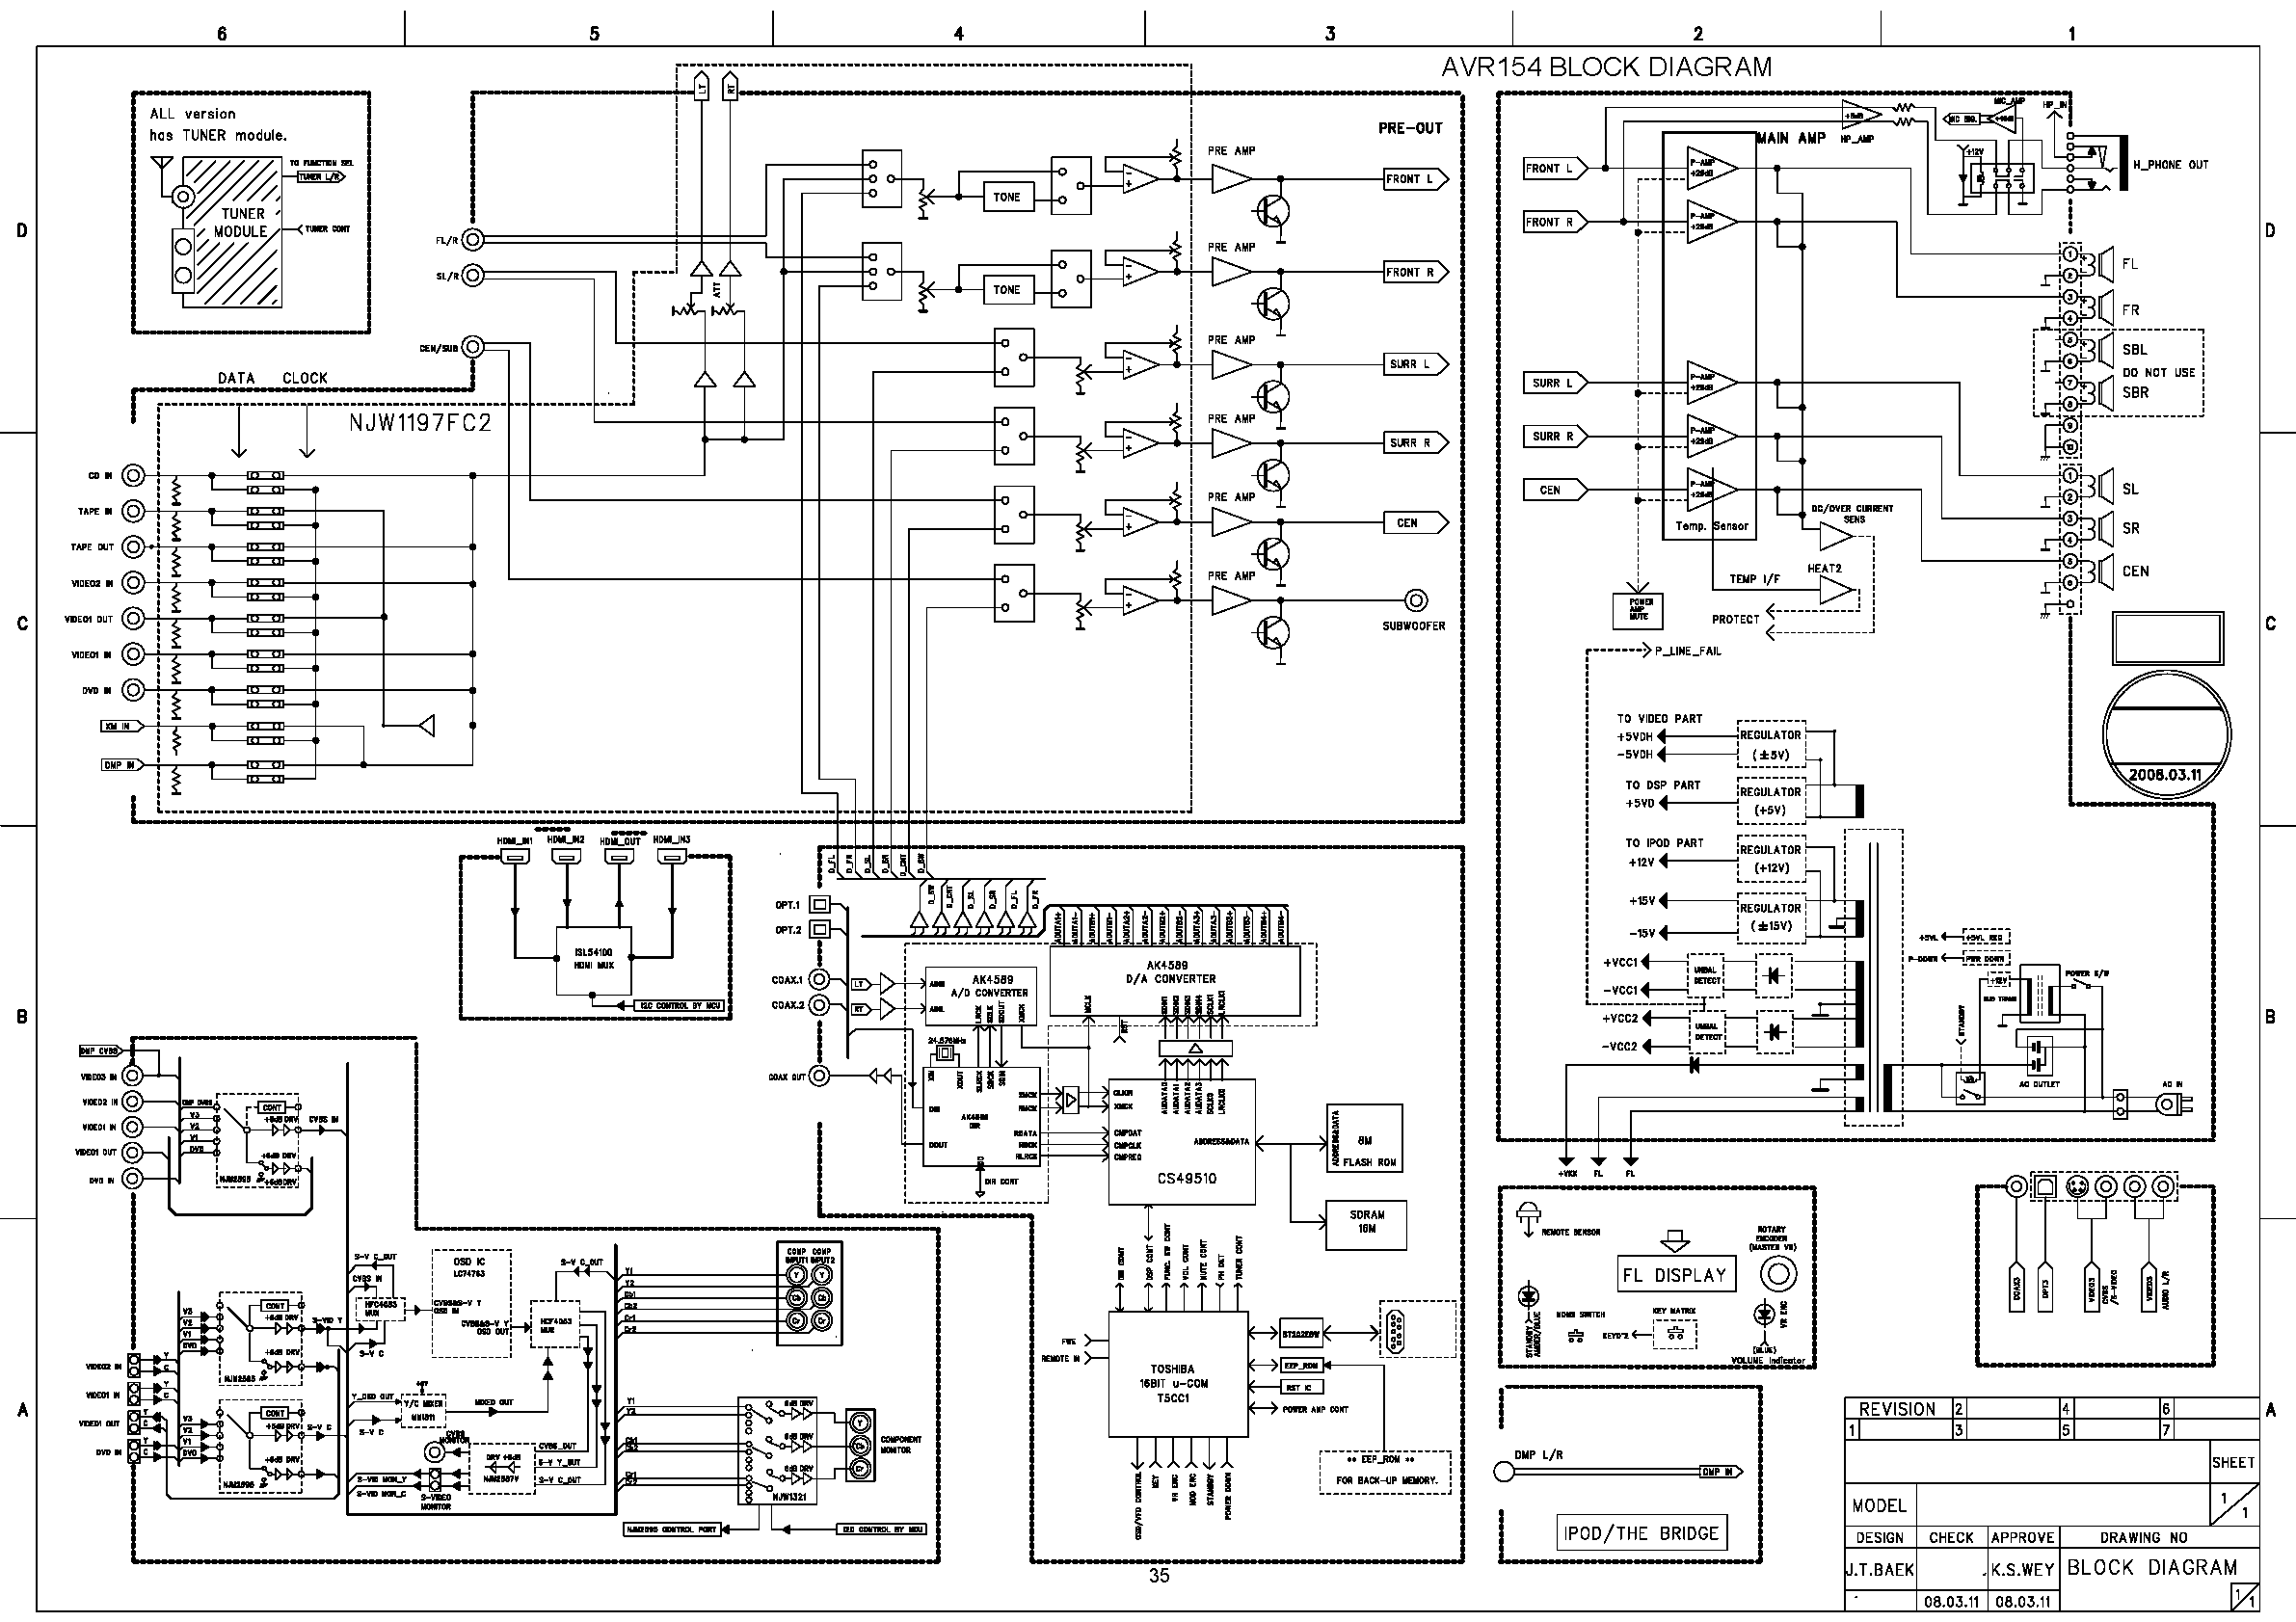 2007 isuzu w3500 wiring diagram diagram base website wiring diagram -  fishbonediagramppt.mjjforum.it  diagram base website full edition - mjjforum